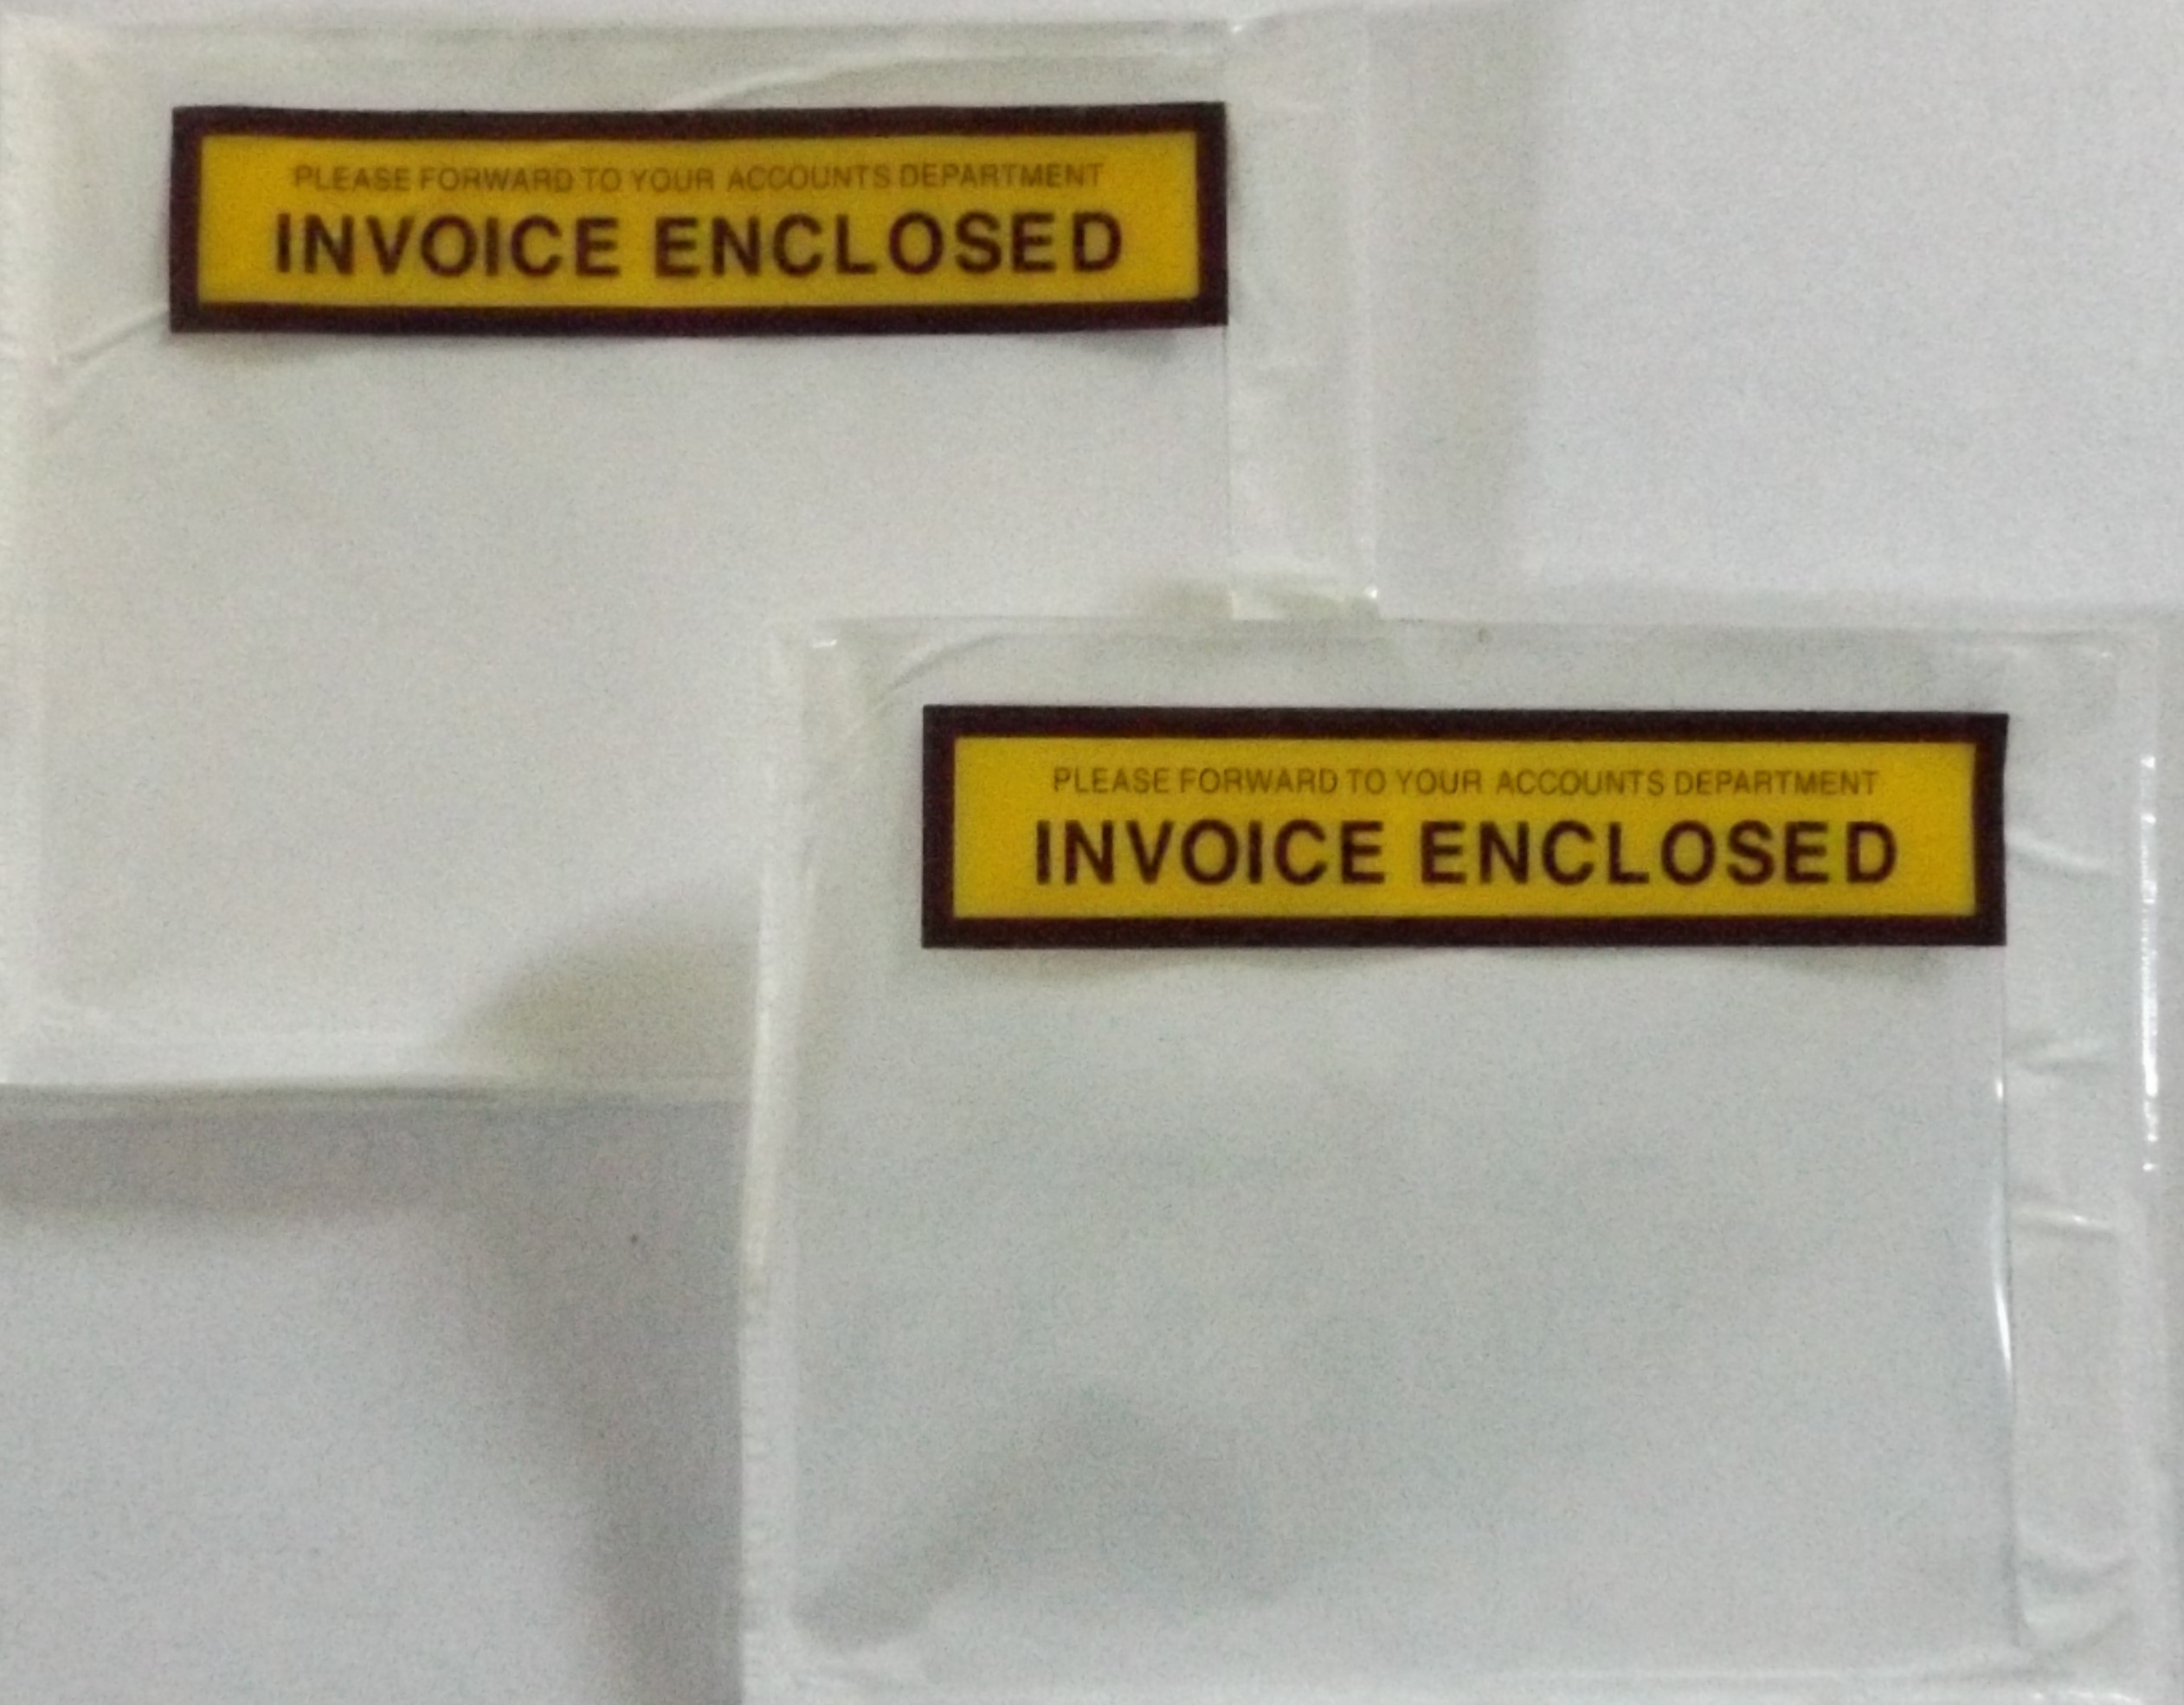 DESPATCH ENVELOPES - INVOICE ENCLOSED